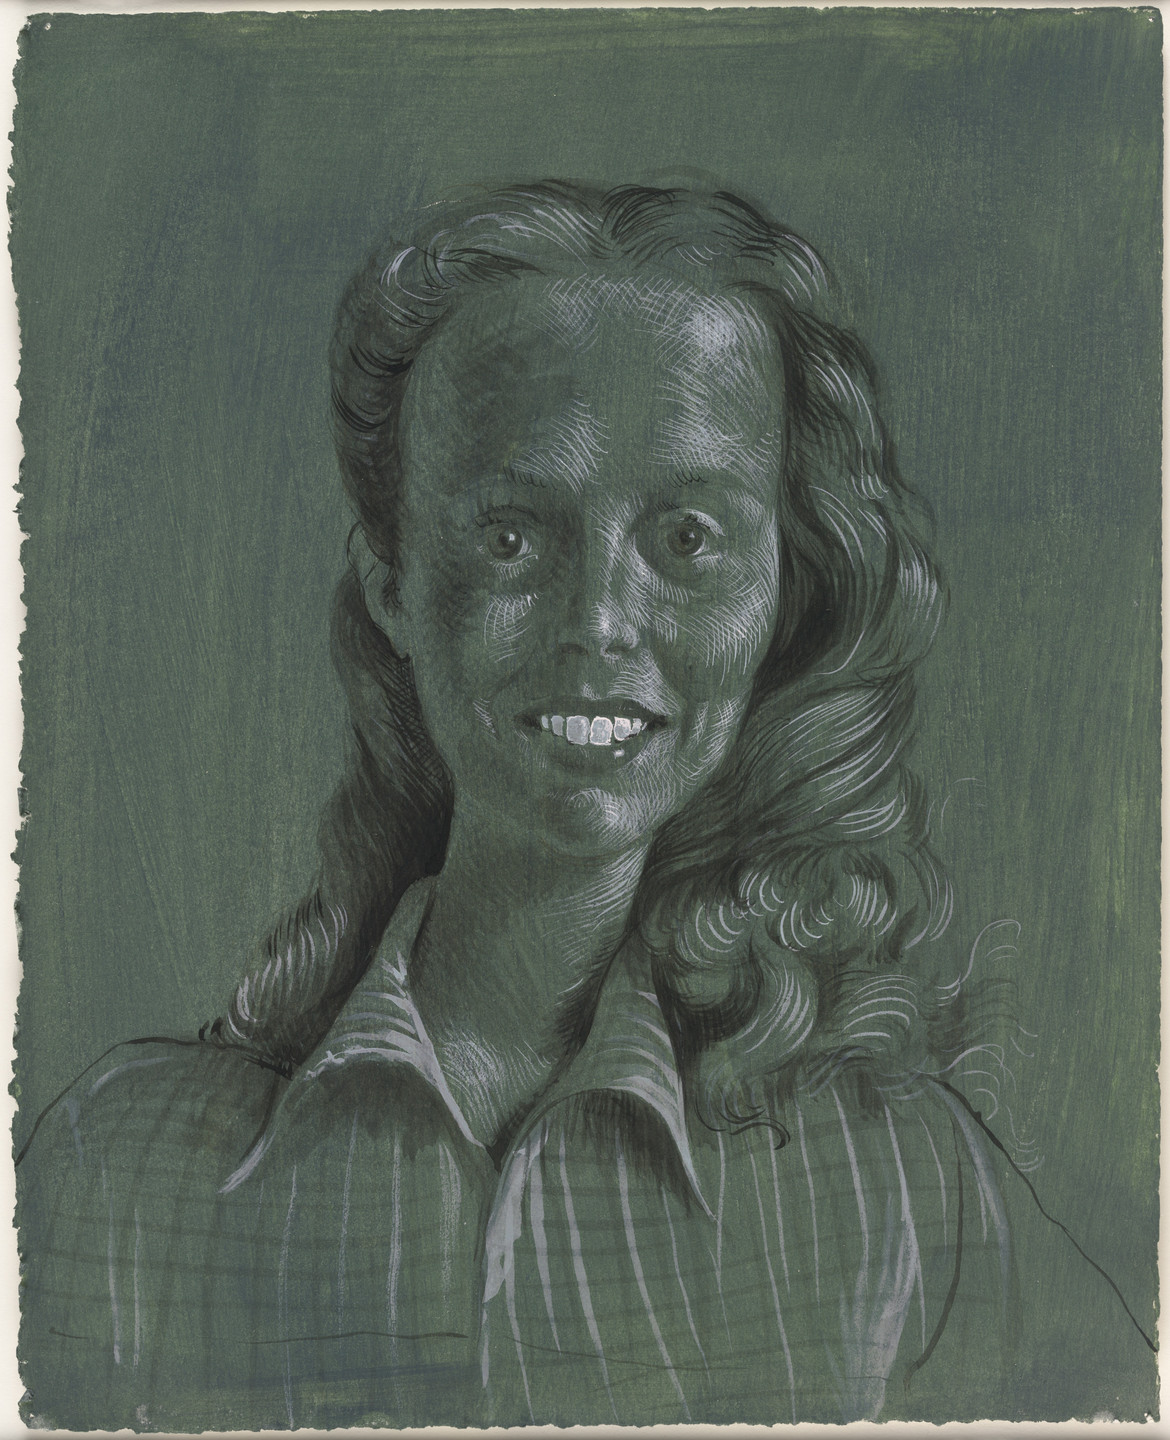 John Currin. The Exwife. (2001)